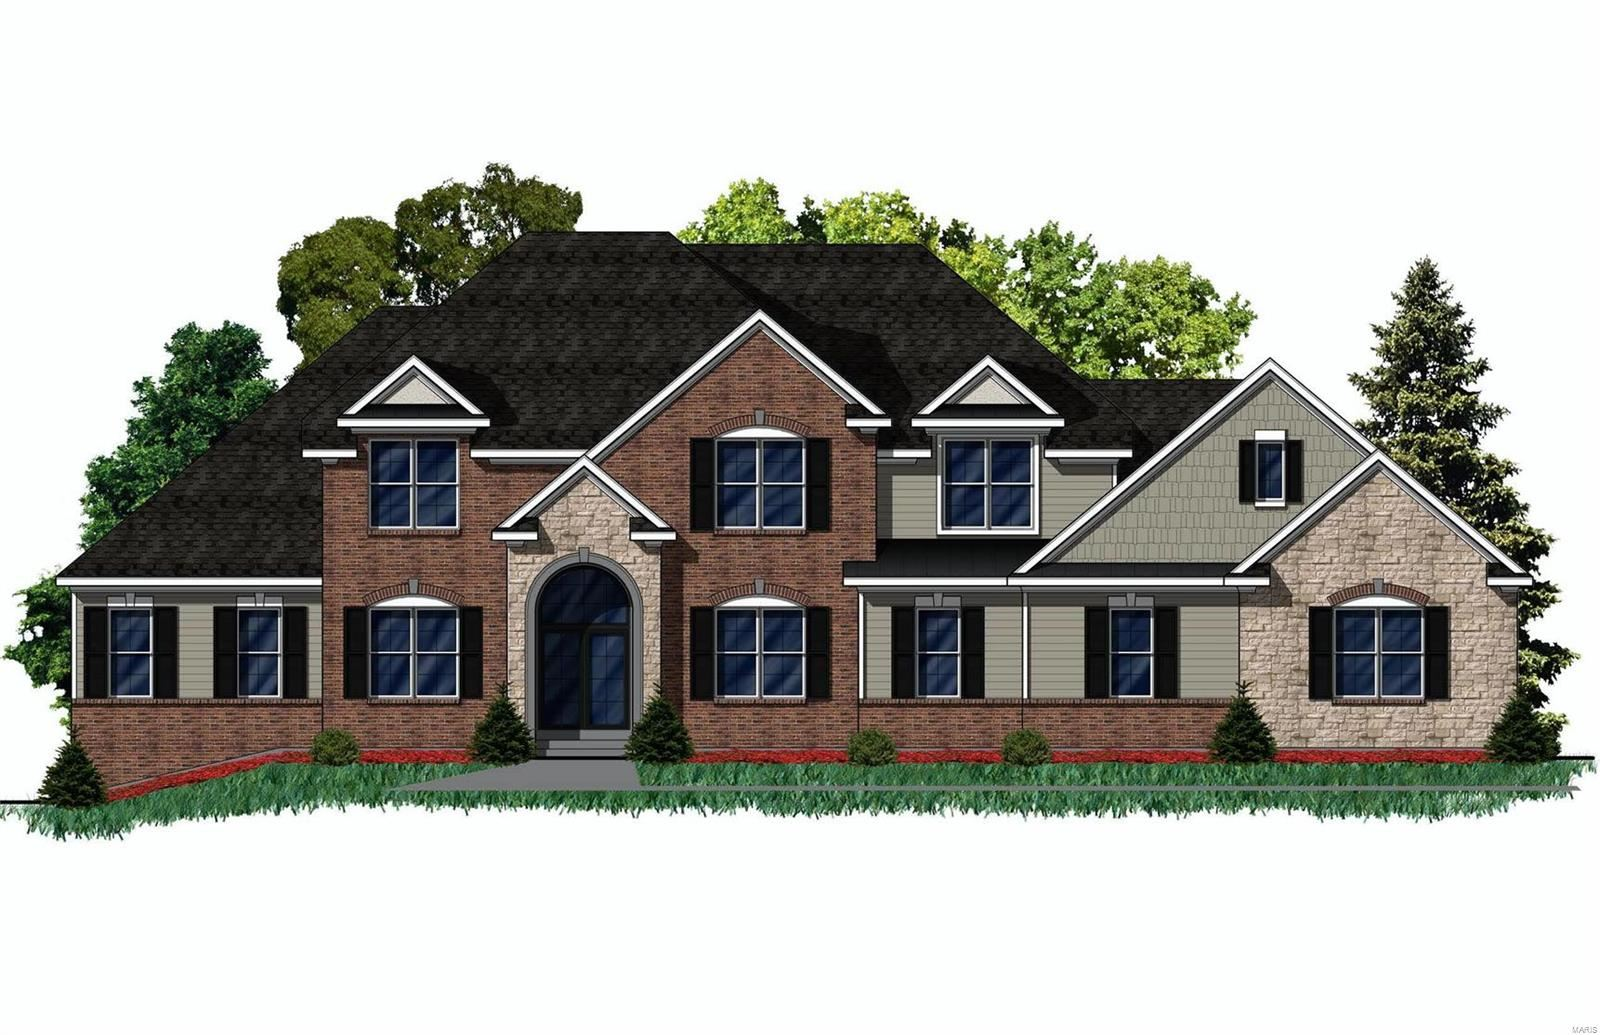 13221 Stone Ct TBB (Lot 1), Town and Country, MO 63131 - MLS#: 20056379